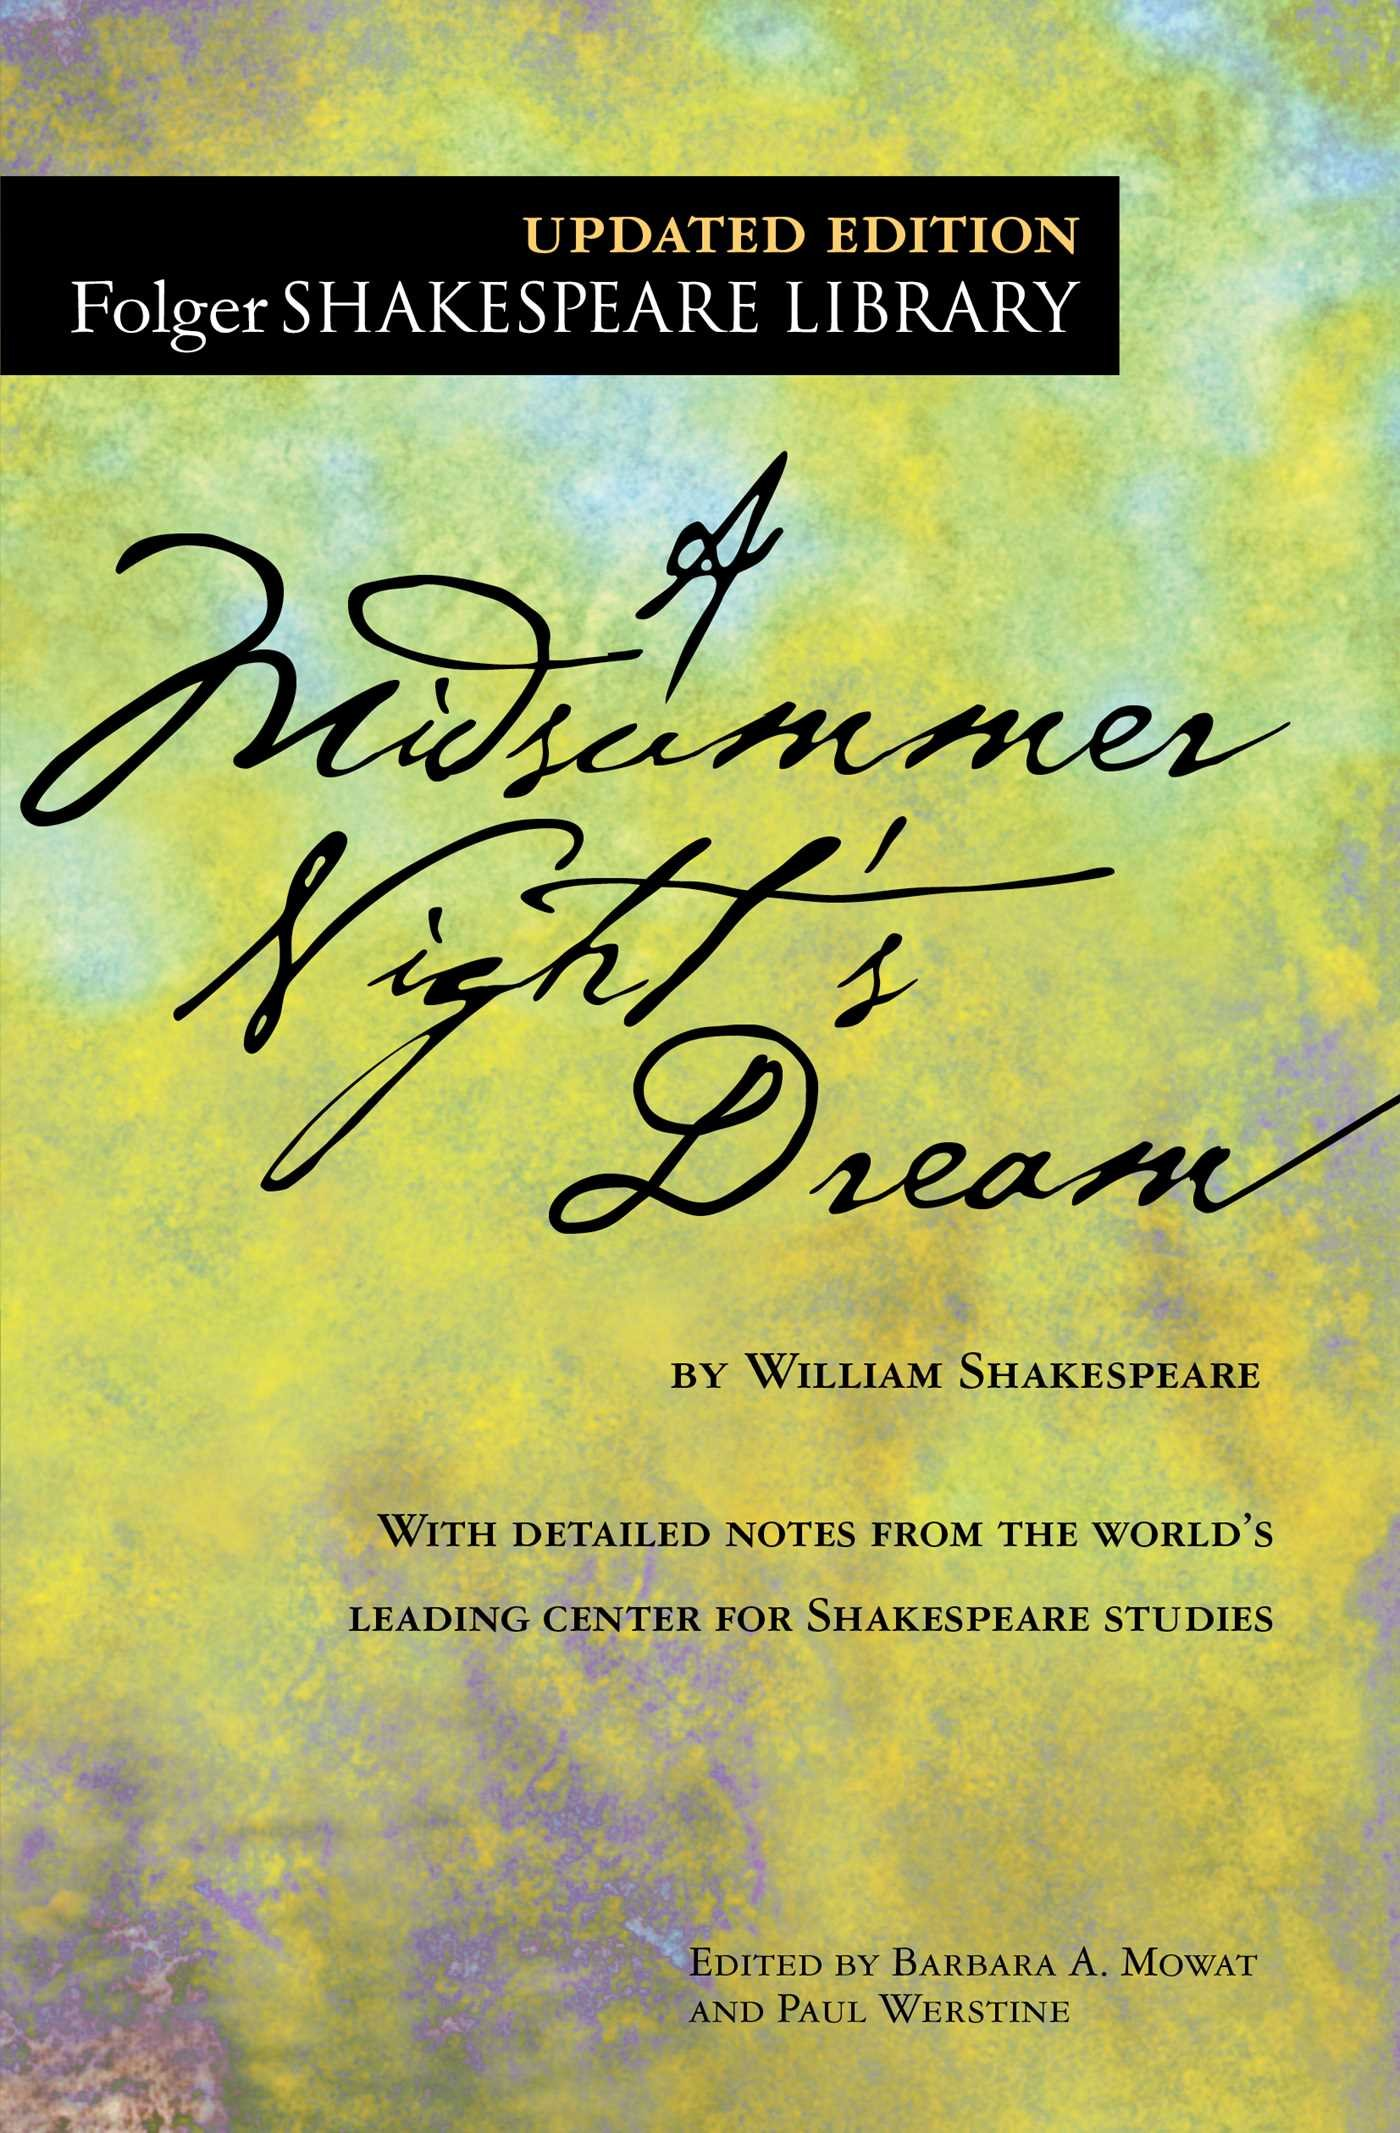 Amazon: A Midsummer Night's Dream (folger Shakespeare Library)  (9781501146213): William Shakespeare, Dr Barbara A Mowat, Paul Werstine  Phd: Books